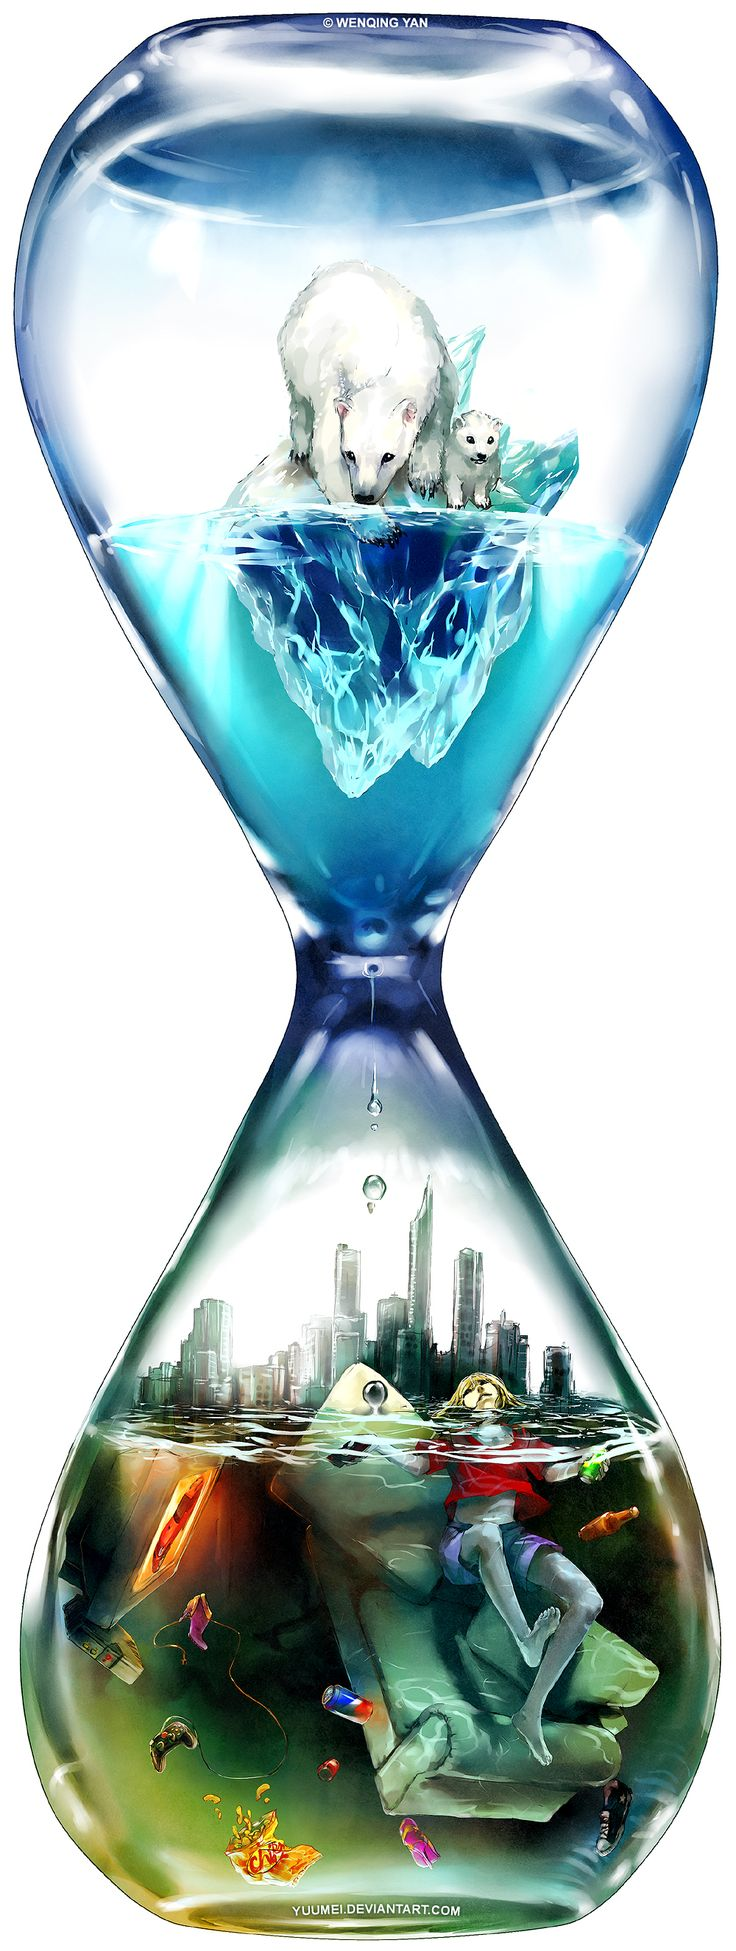 """""""Countdown"""" by Yuumei. An intense picture about what humans are doing to destroy the environment."""